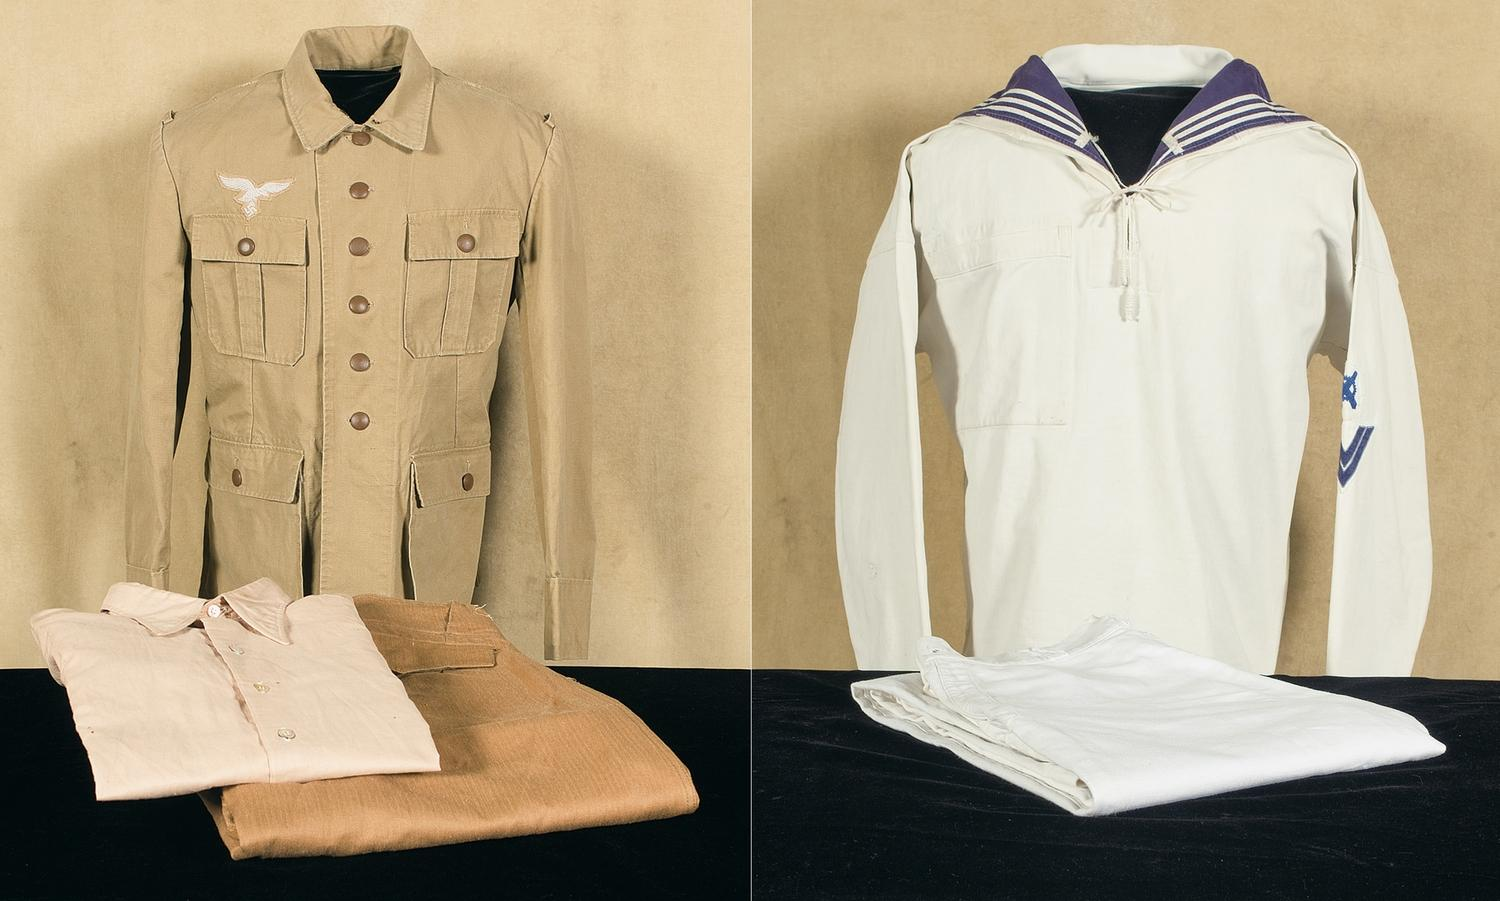 Luftwaffe Tropical Uniform and a Kriegsmarine Tunic and Trousers